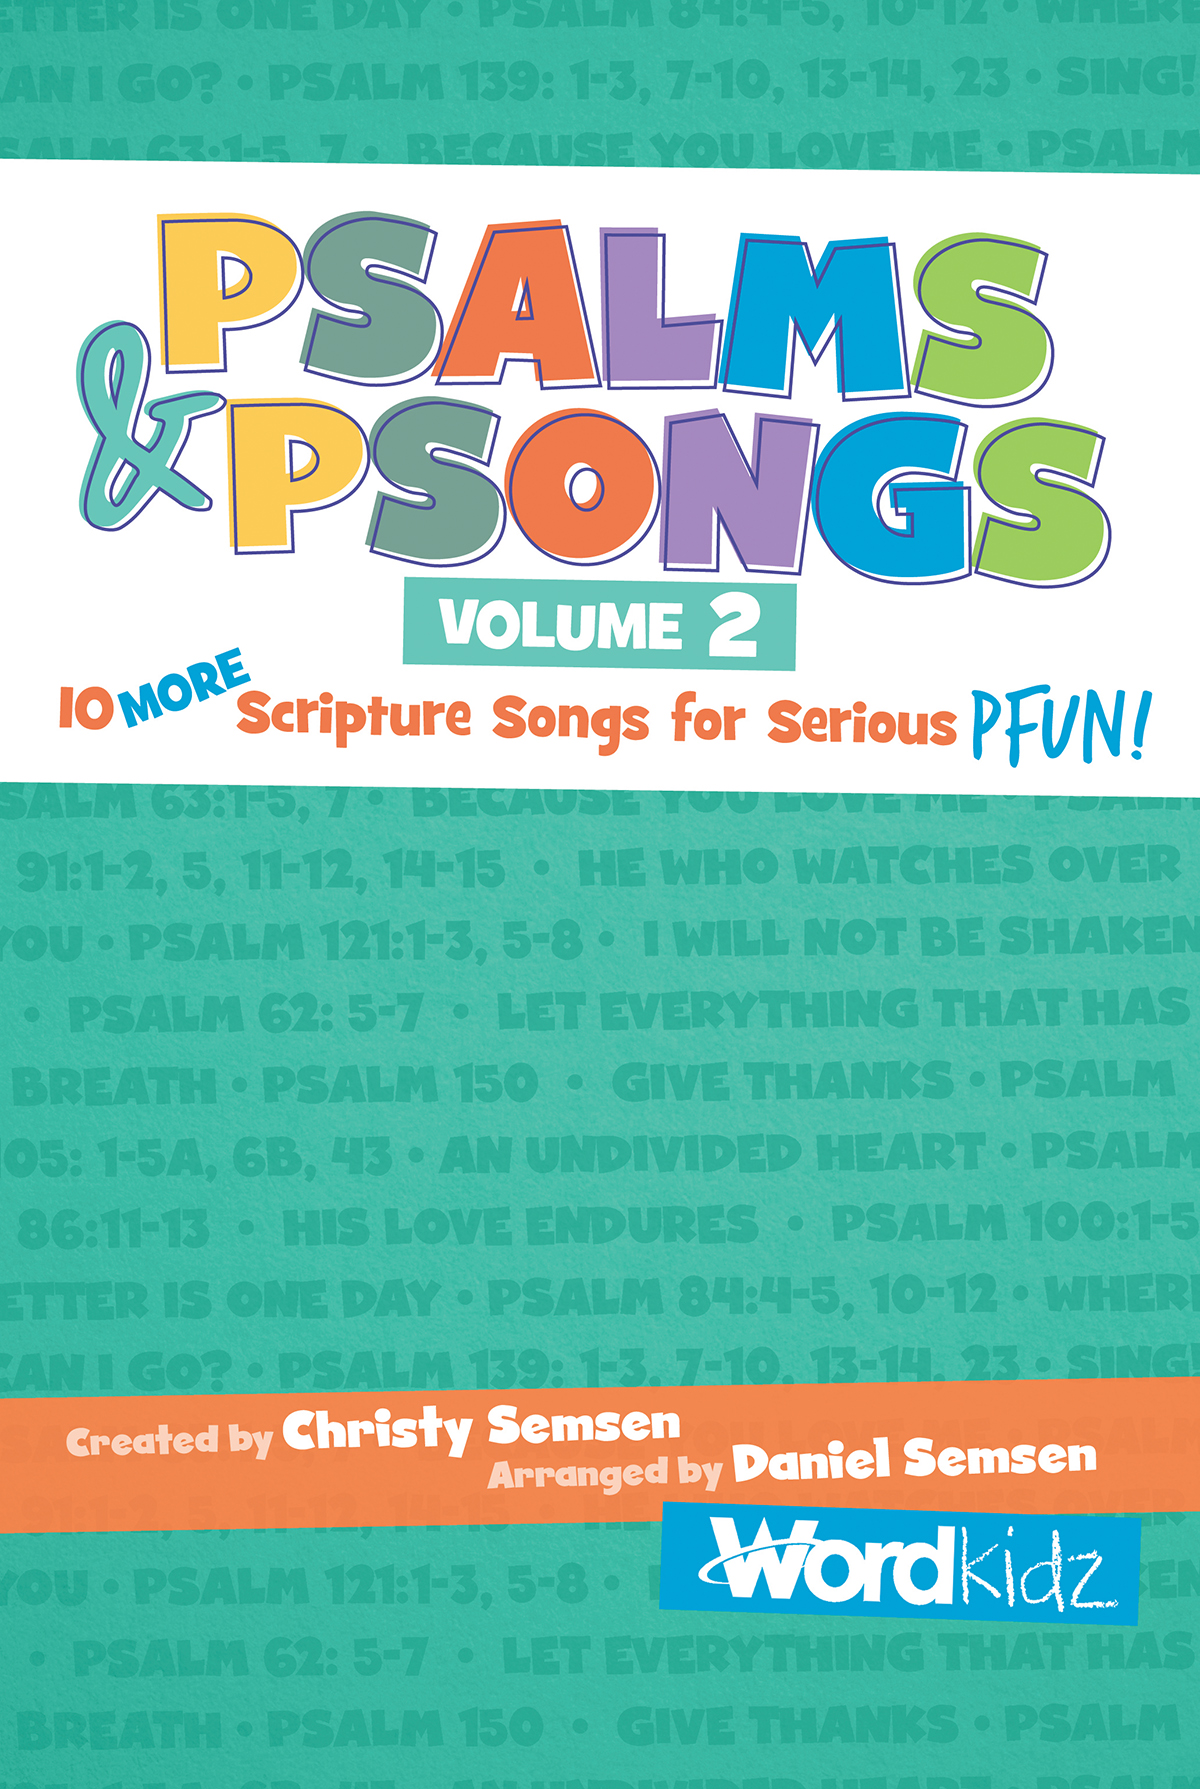 Psalms & Psongs, Volume 2